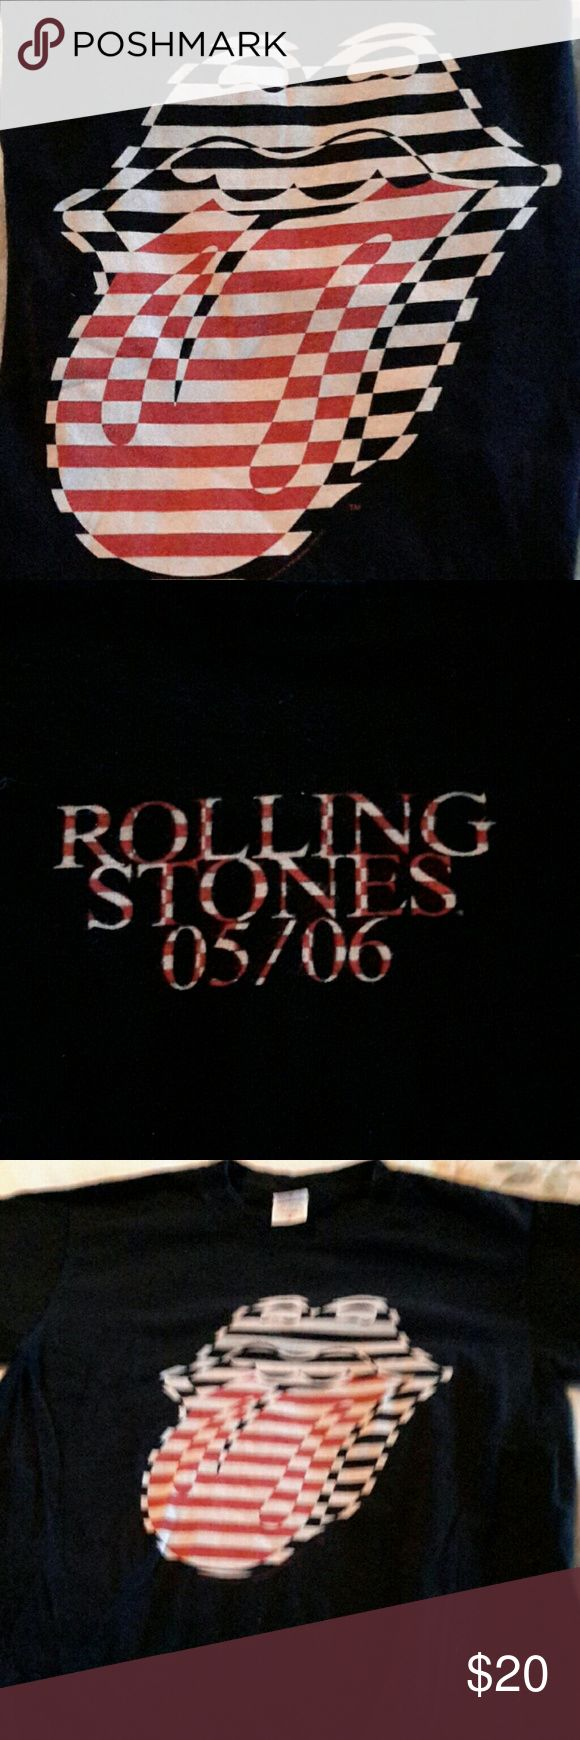 Black Rolling Stones Tongue Concert Tee 05/06 S Excellent condition Rolling Stones Concert Tee from 2006.  Black Unisex  Size small- tongue and lips front  Date on back. Tops Tees - Short Sleeve